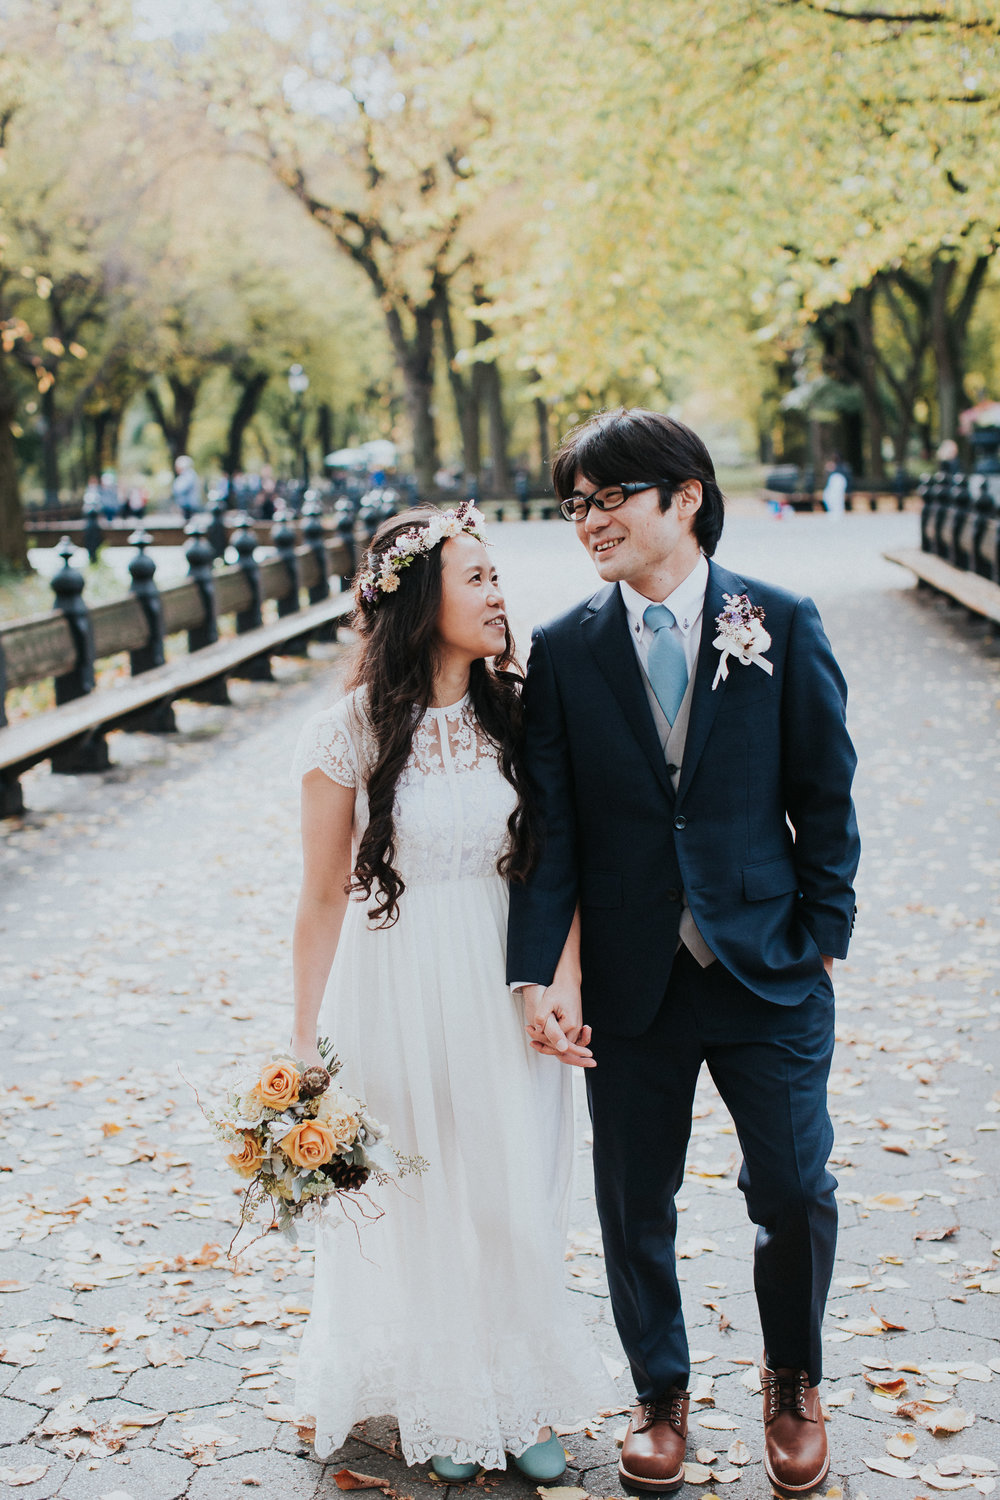 Central-Park-Brooklyn-Bridge-Dumbo-NYC-Documentary-Wedding-Photographer-46.jpg